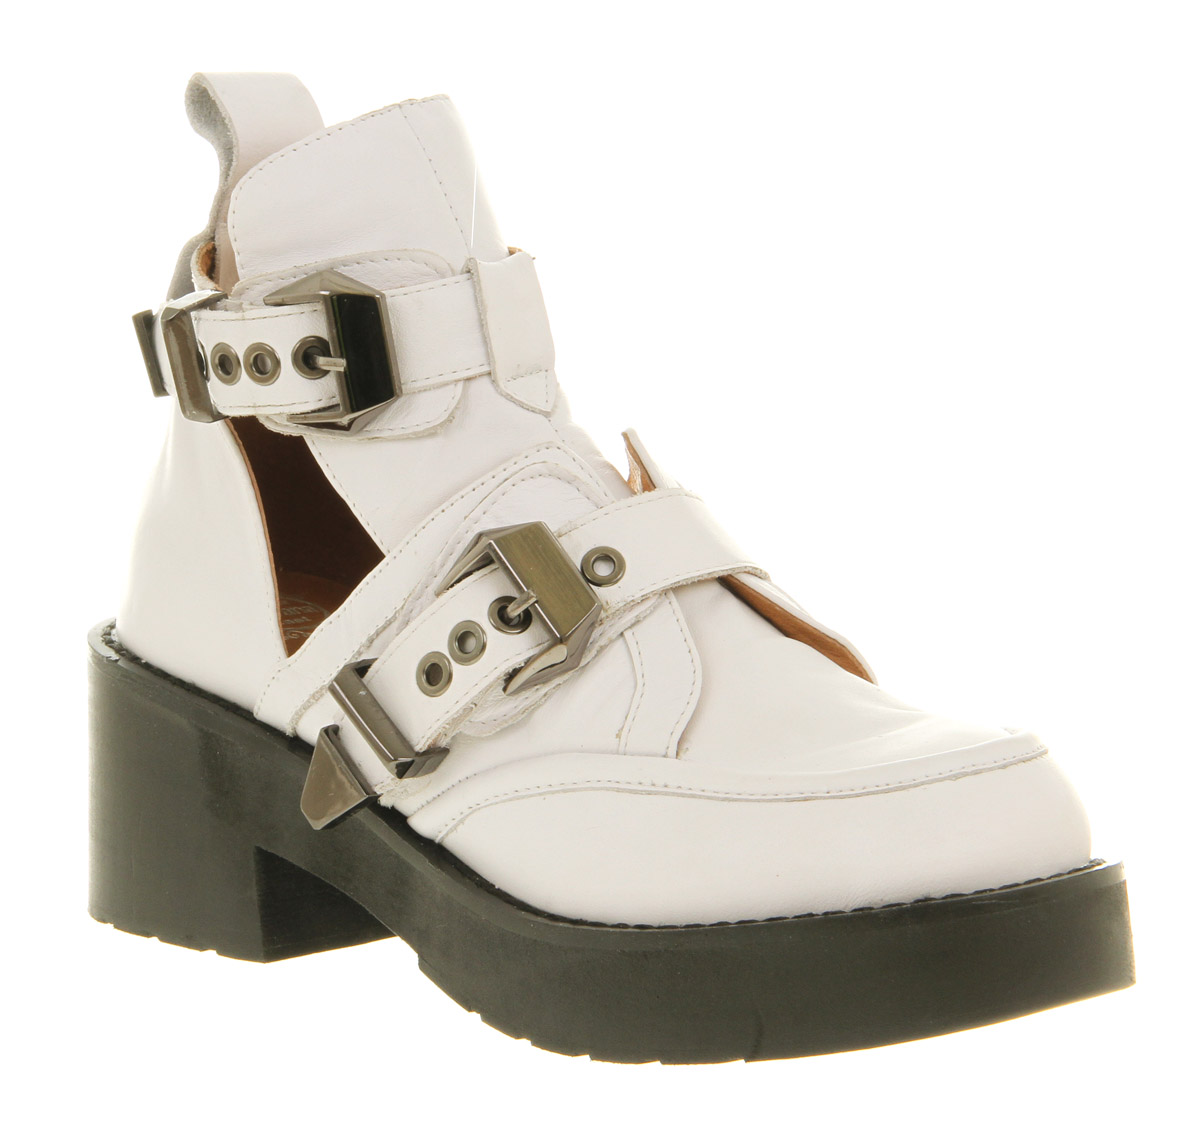 New Lower Prices Skechers Starship Buckle Detail Faux Shearling Boots - Womens Shoes & Boots